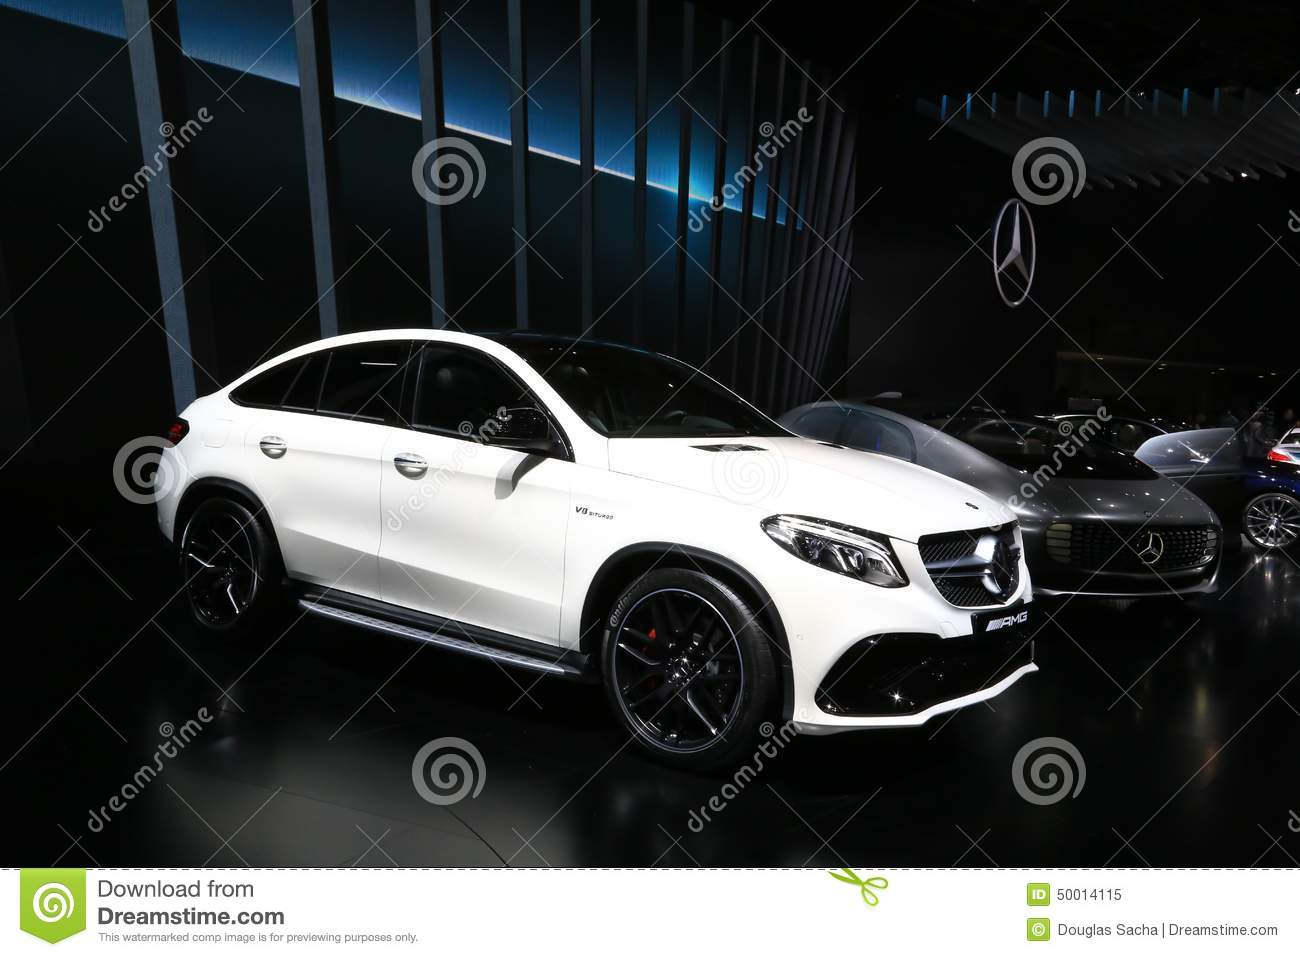 Mercedes benz gle 63 amg suv displayed at the auto show for Mercedes benz orlando north